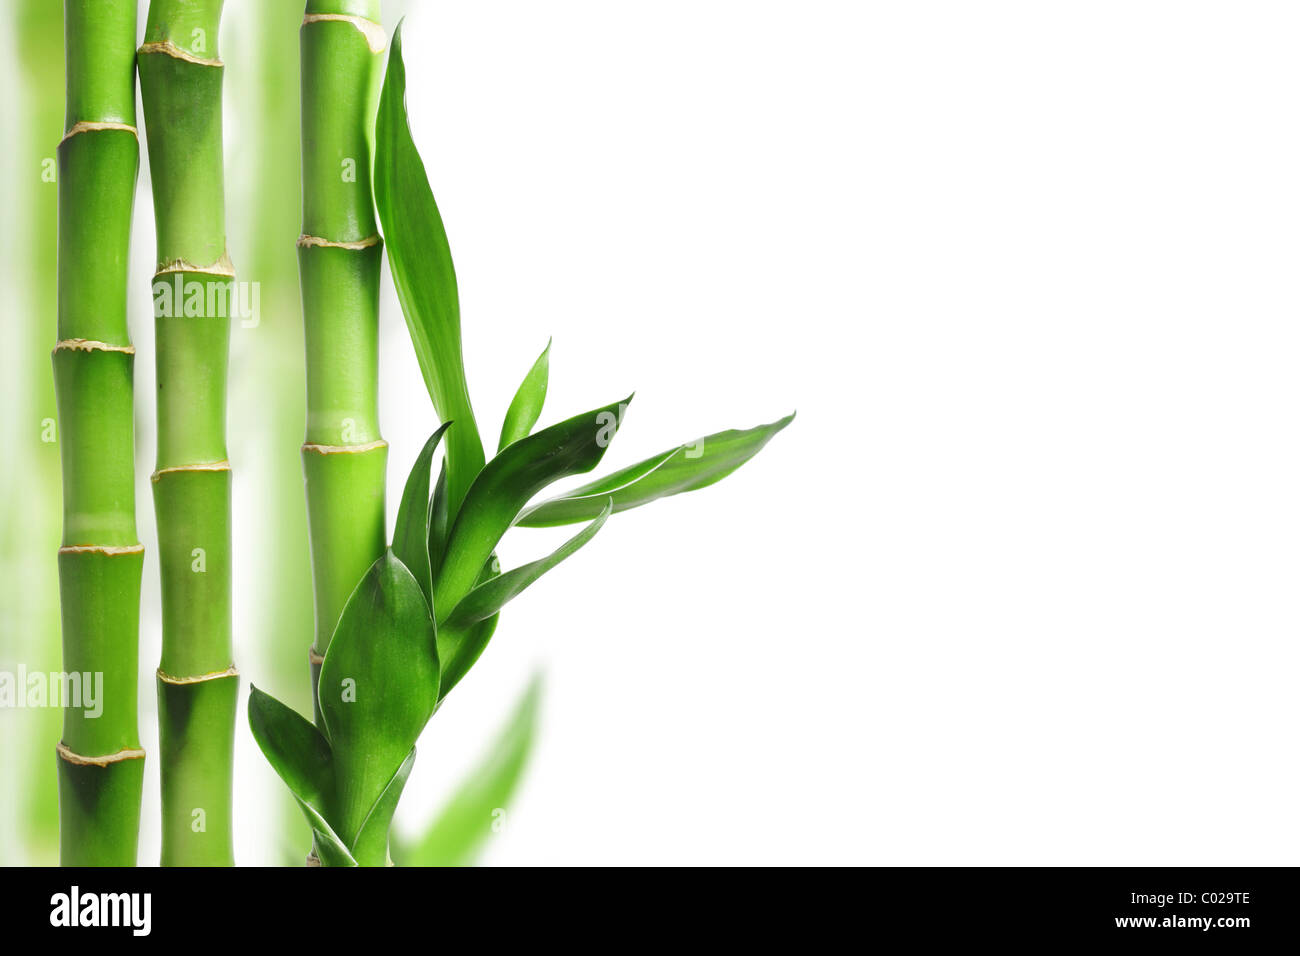 Green bamboo border with copy space - Stock Image